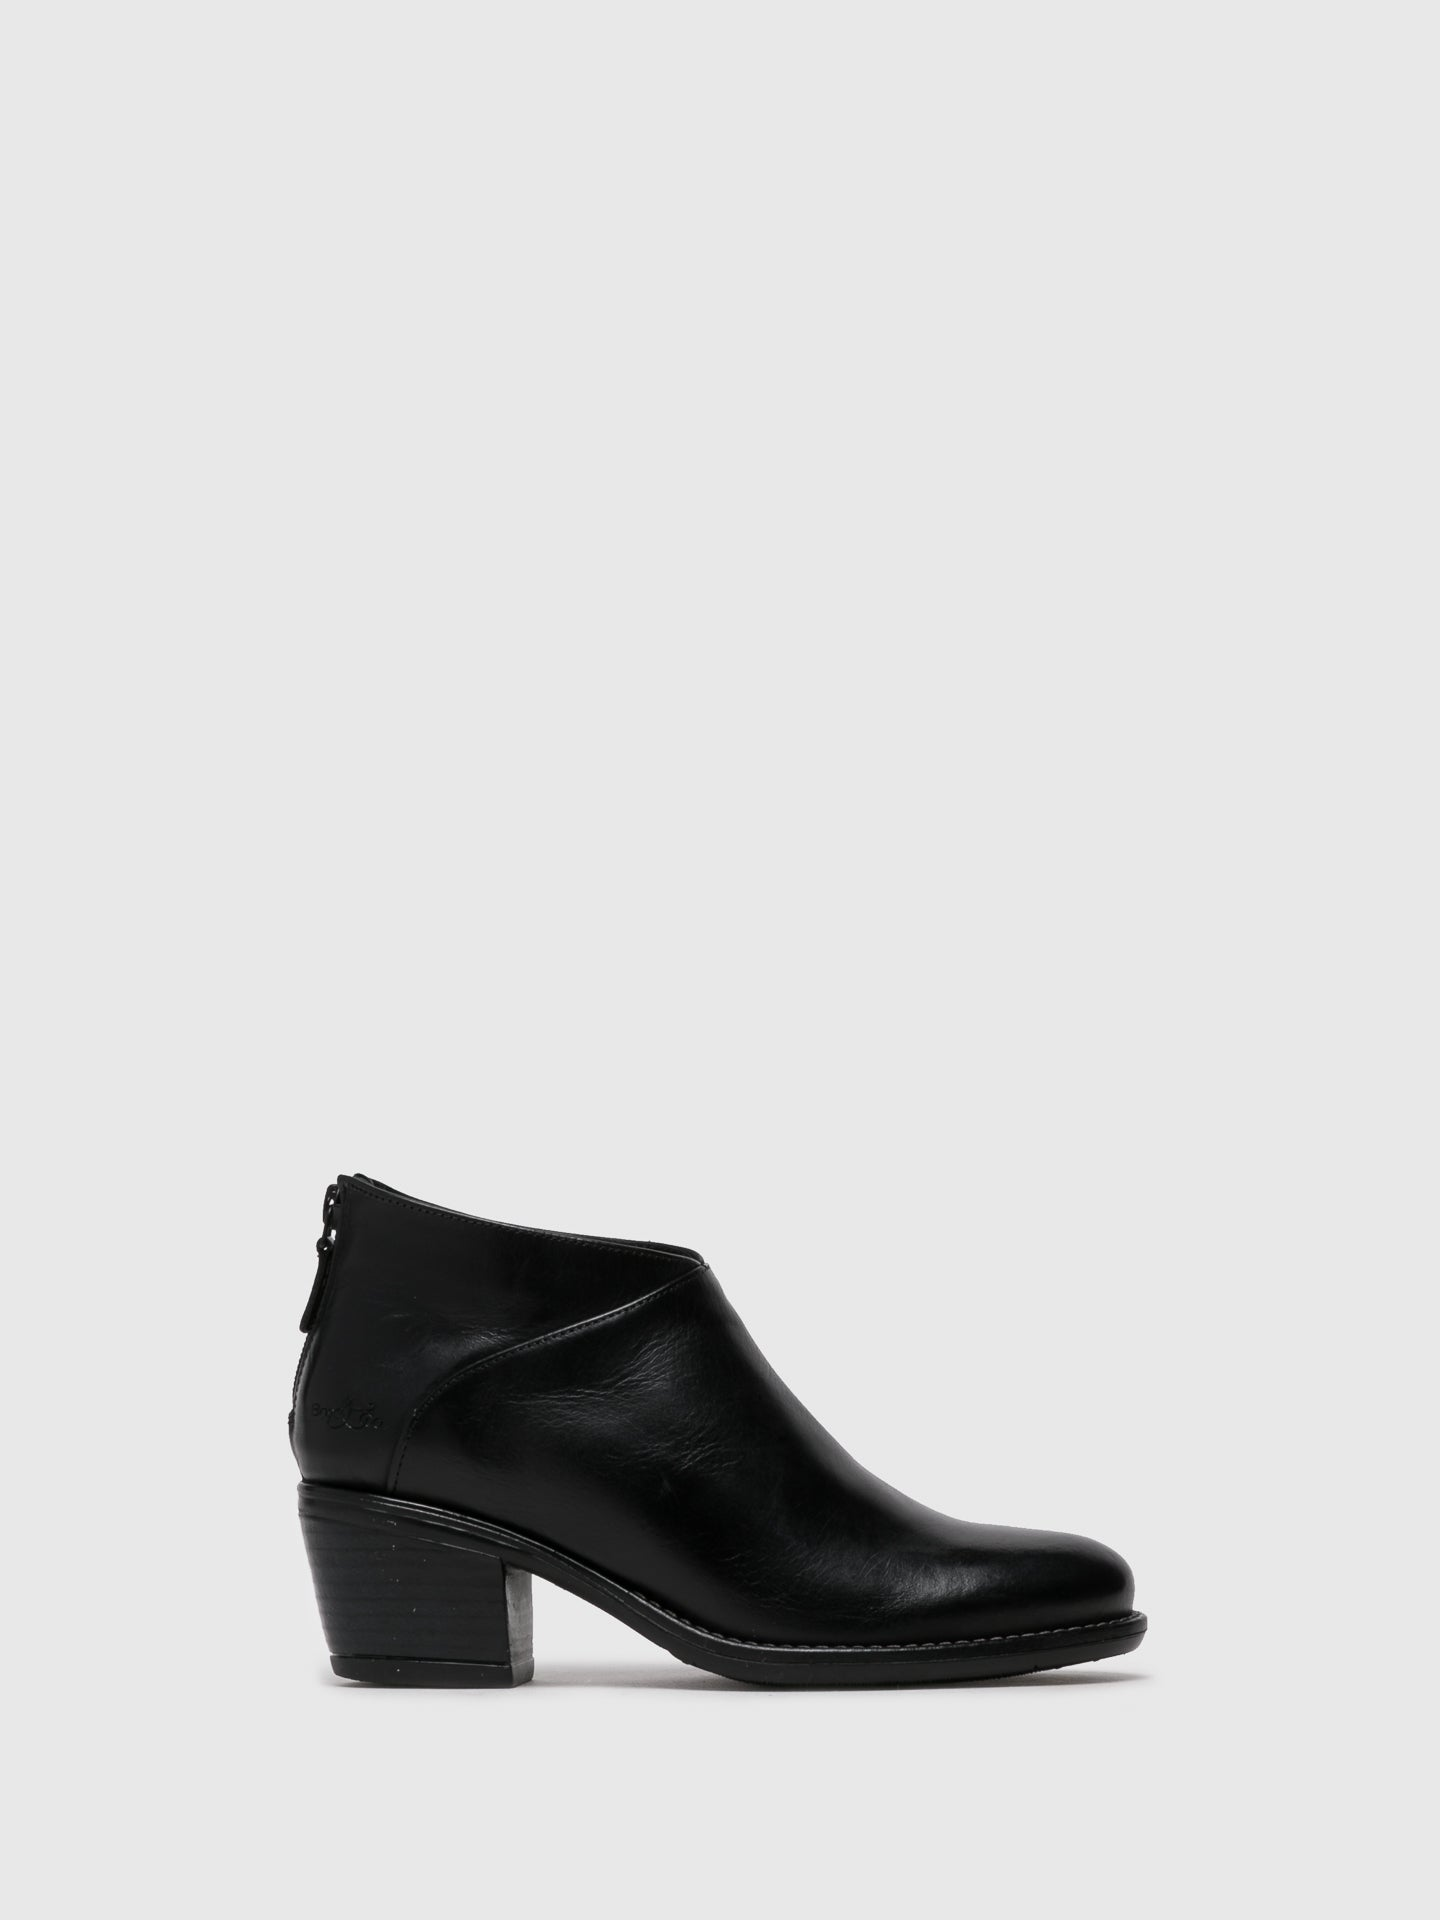 Bos&Co Black Round Toe Shoes